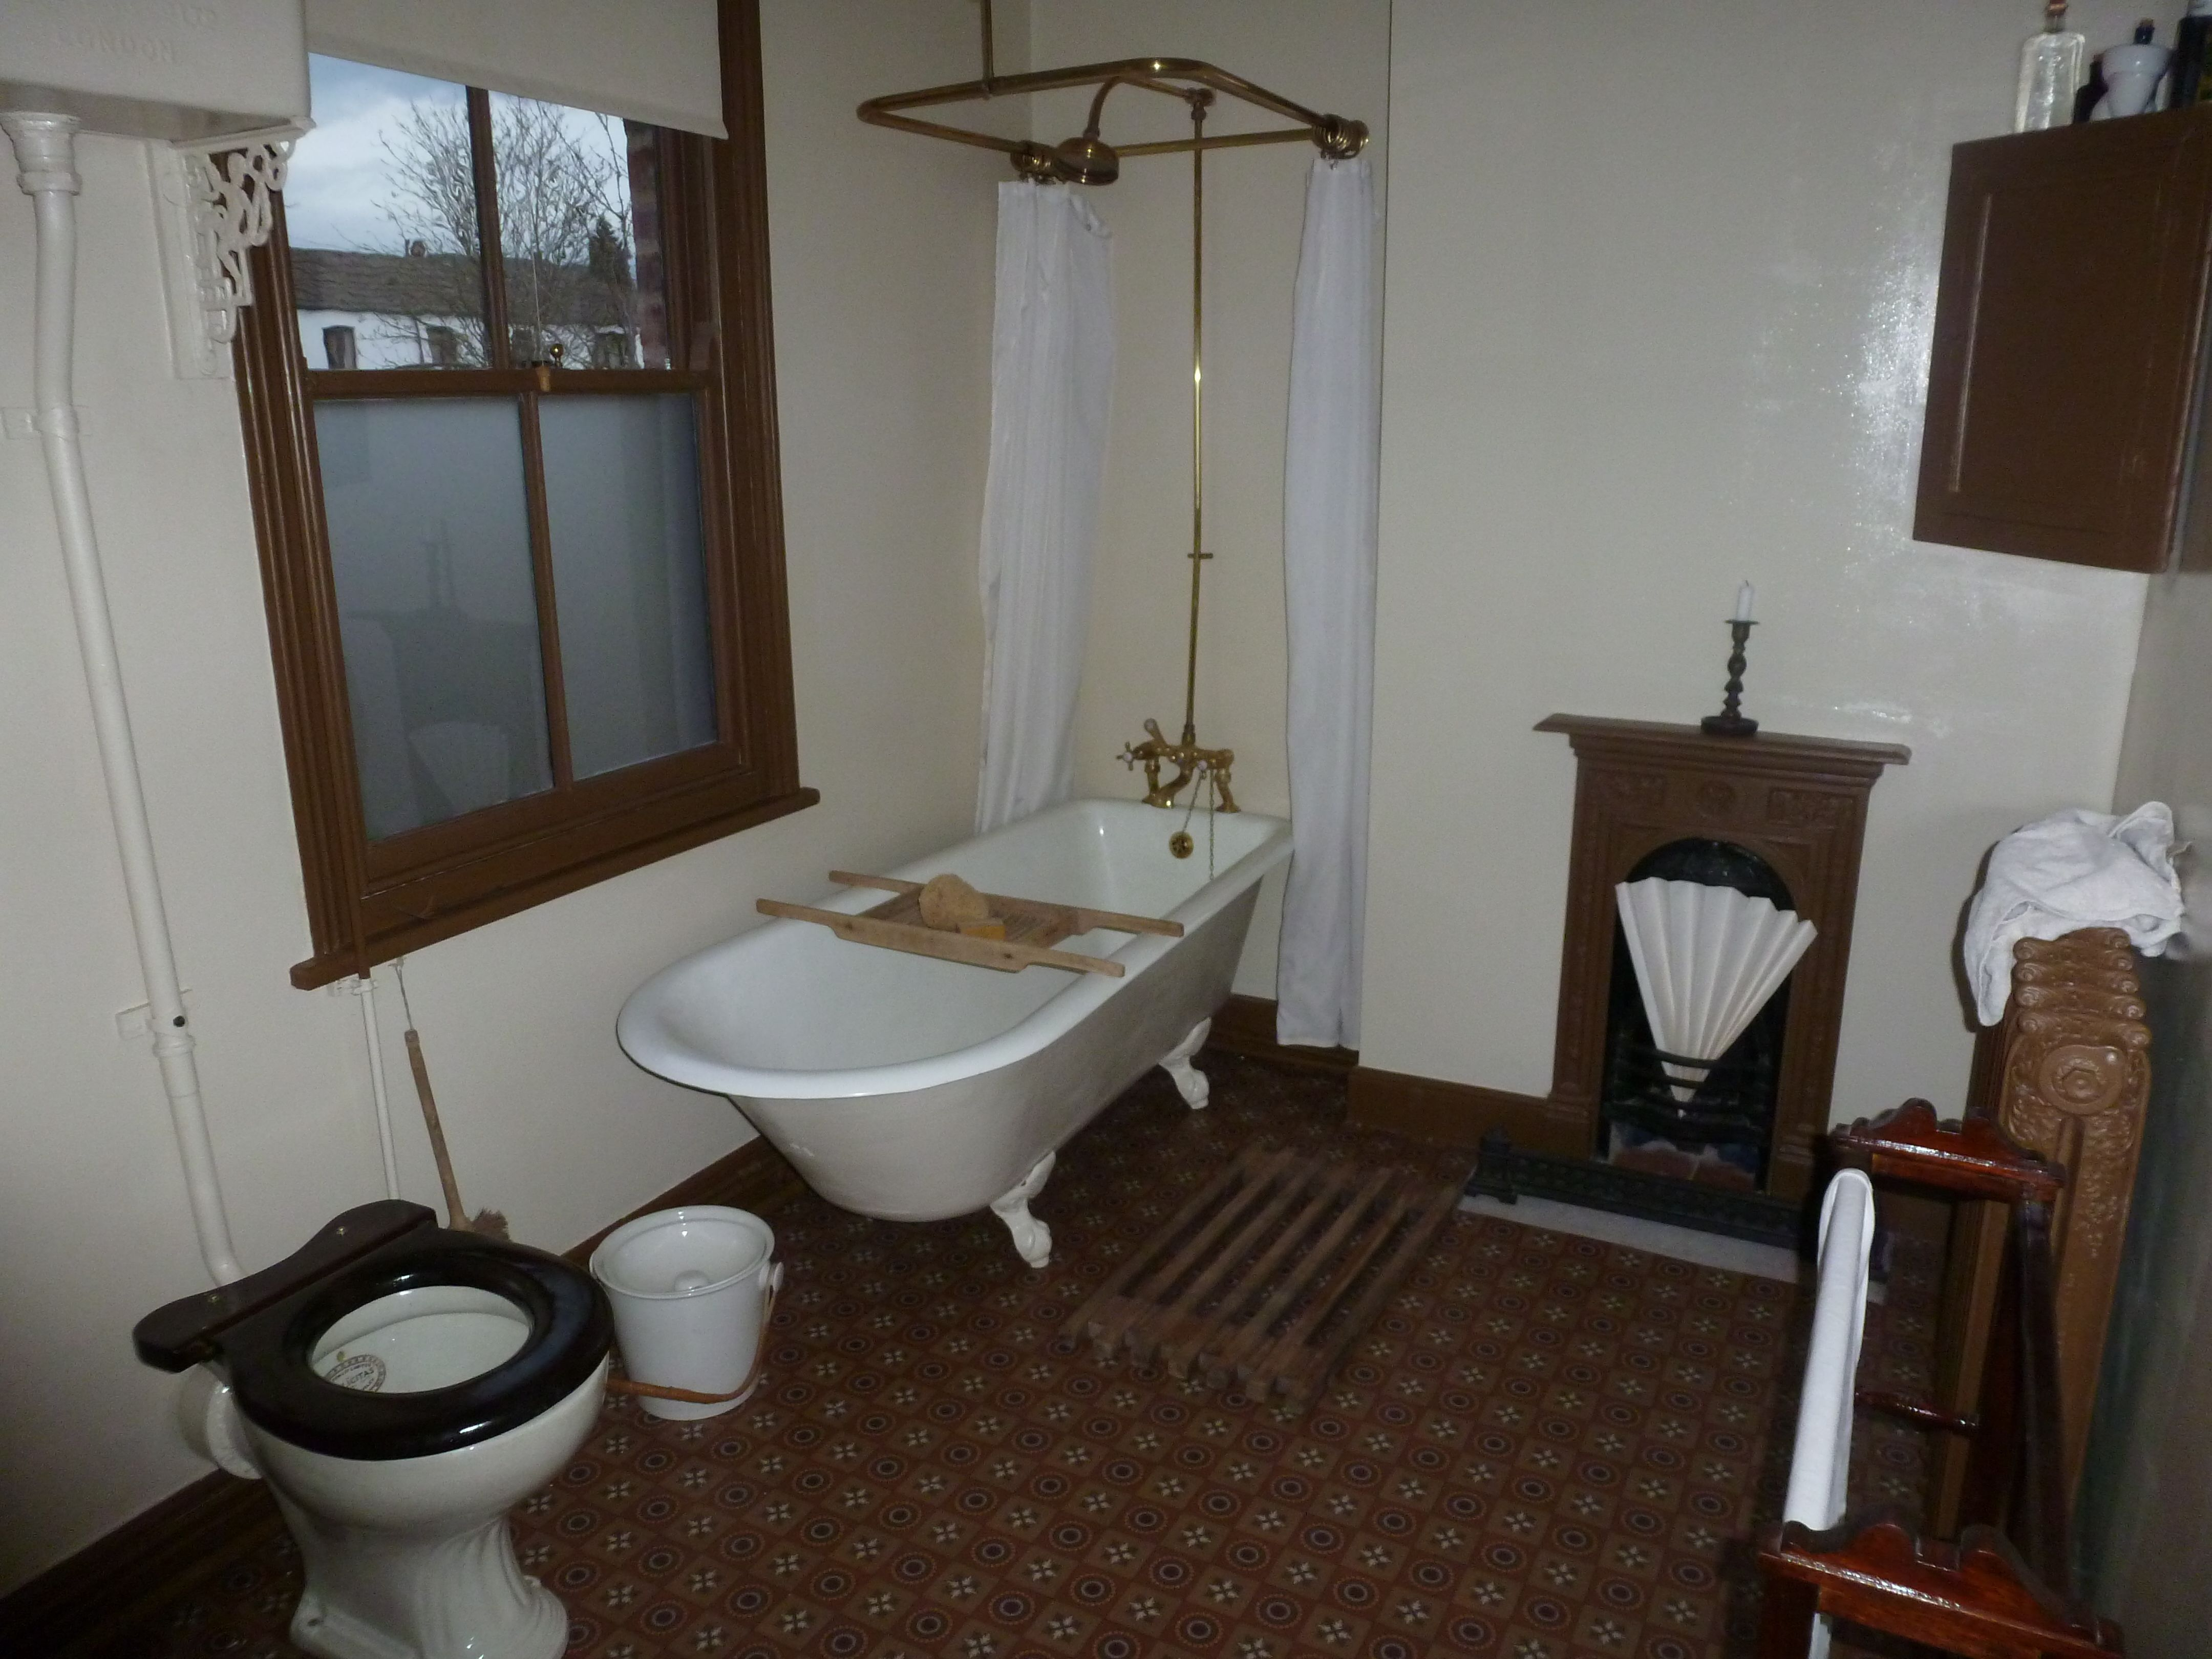 Recreation of early 1900s bathroom My VictorianEdwardian